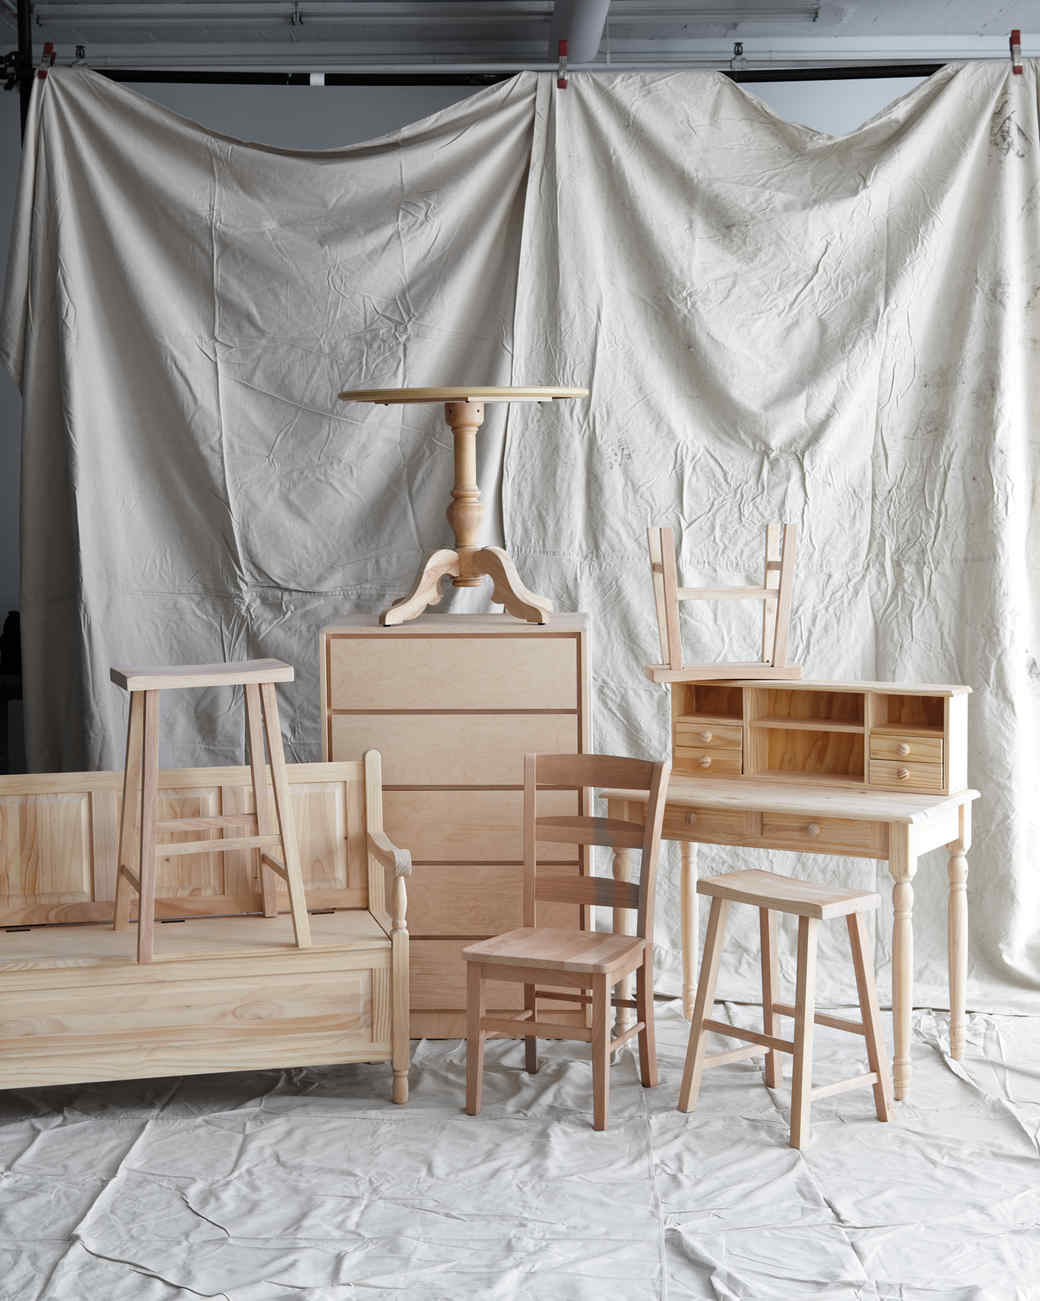 Attractive Raw Furniture #25 - Finishing Touches